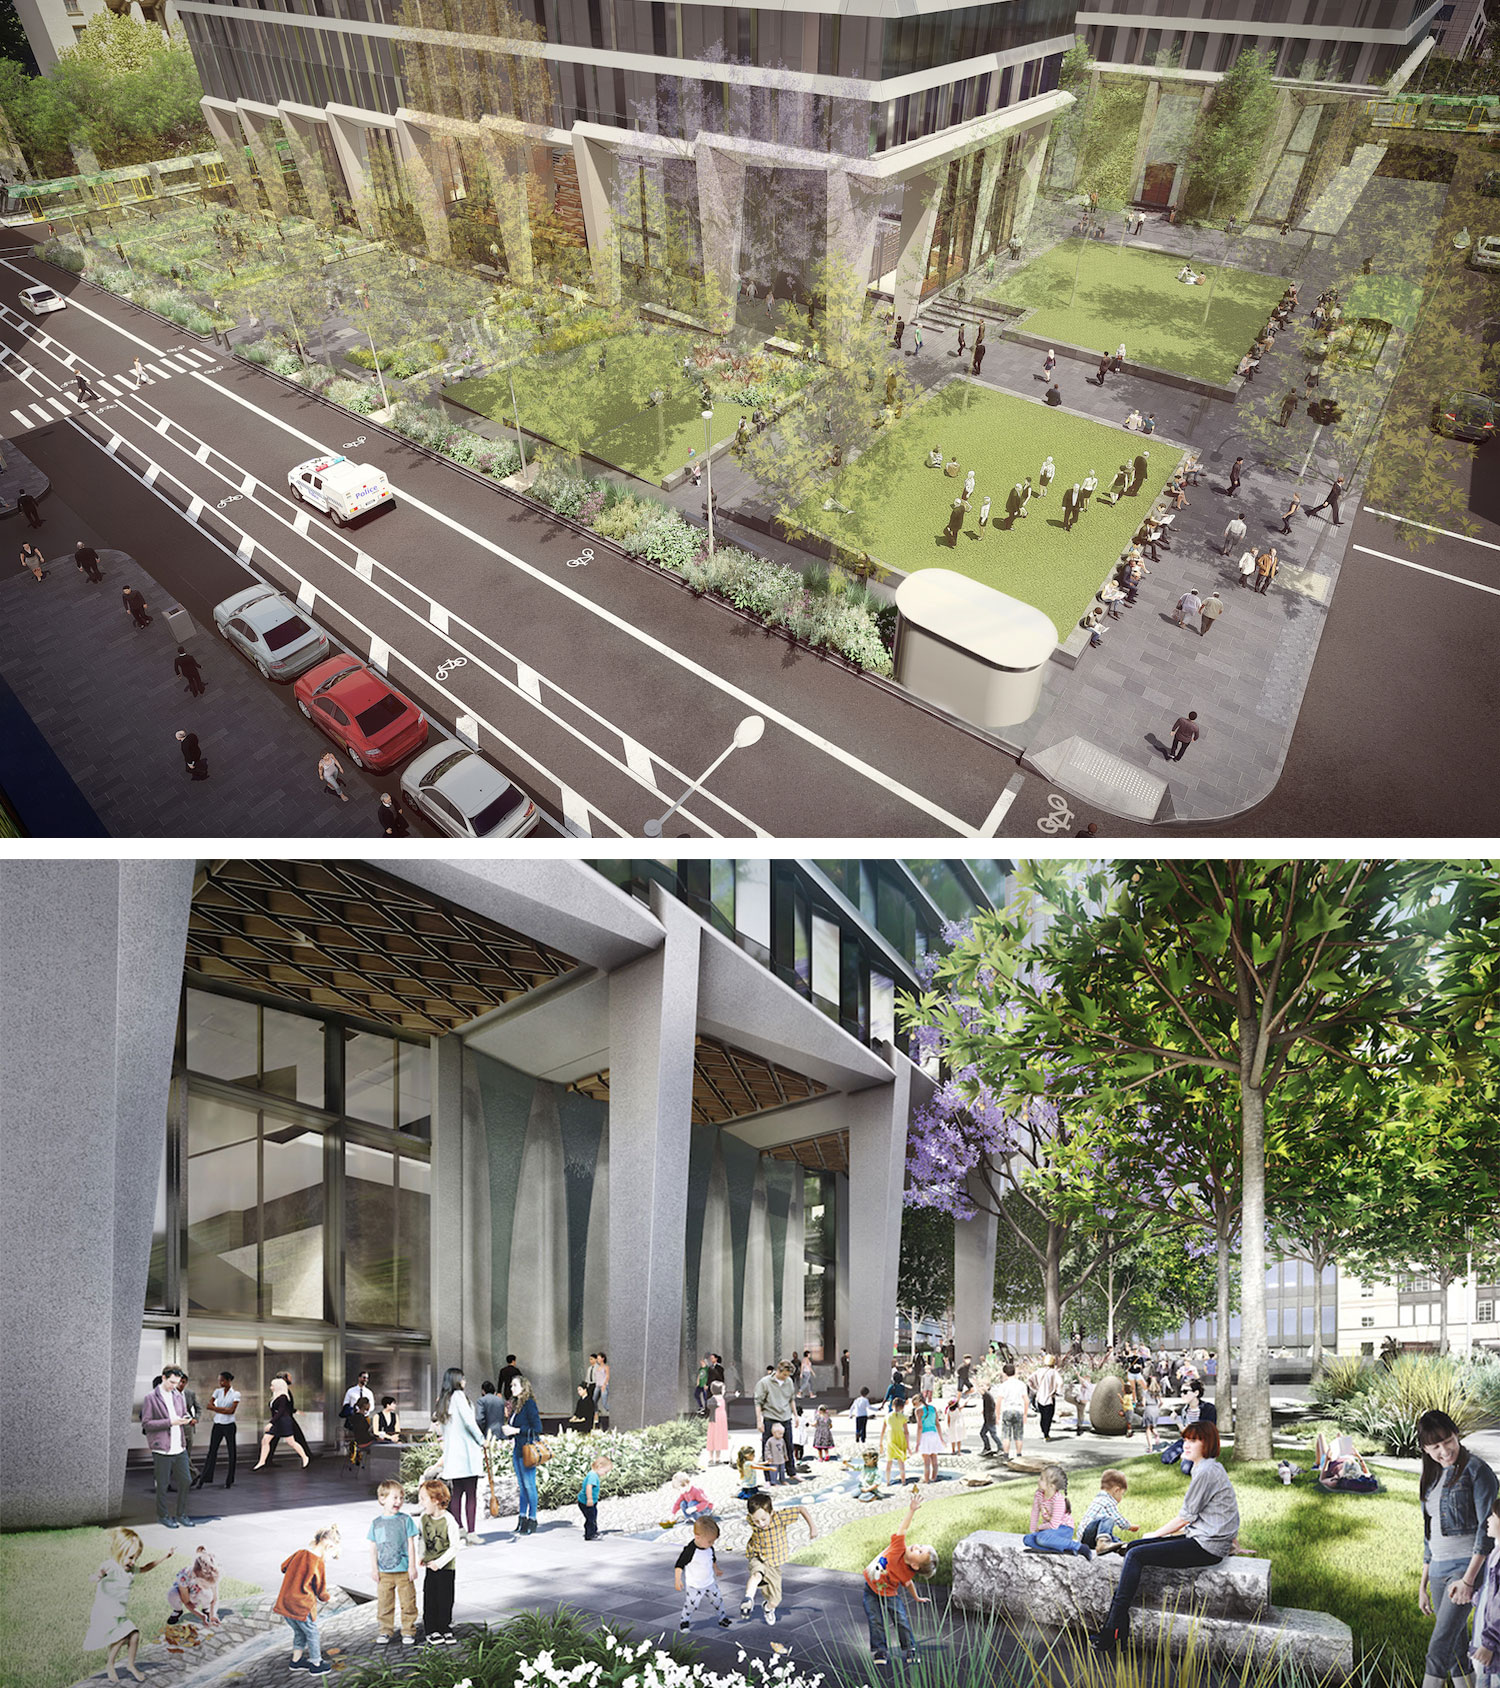 New images released of first public park planned for the CBD since 1980